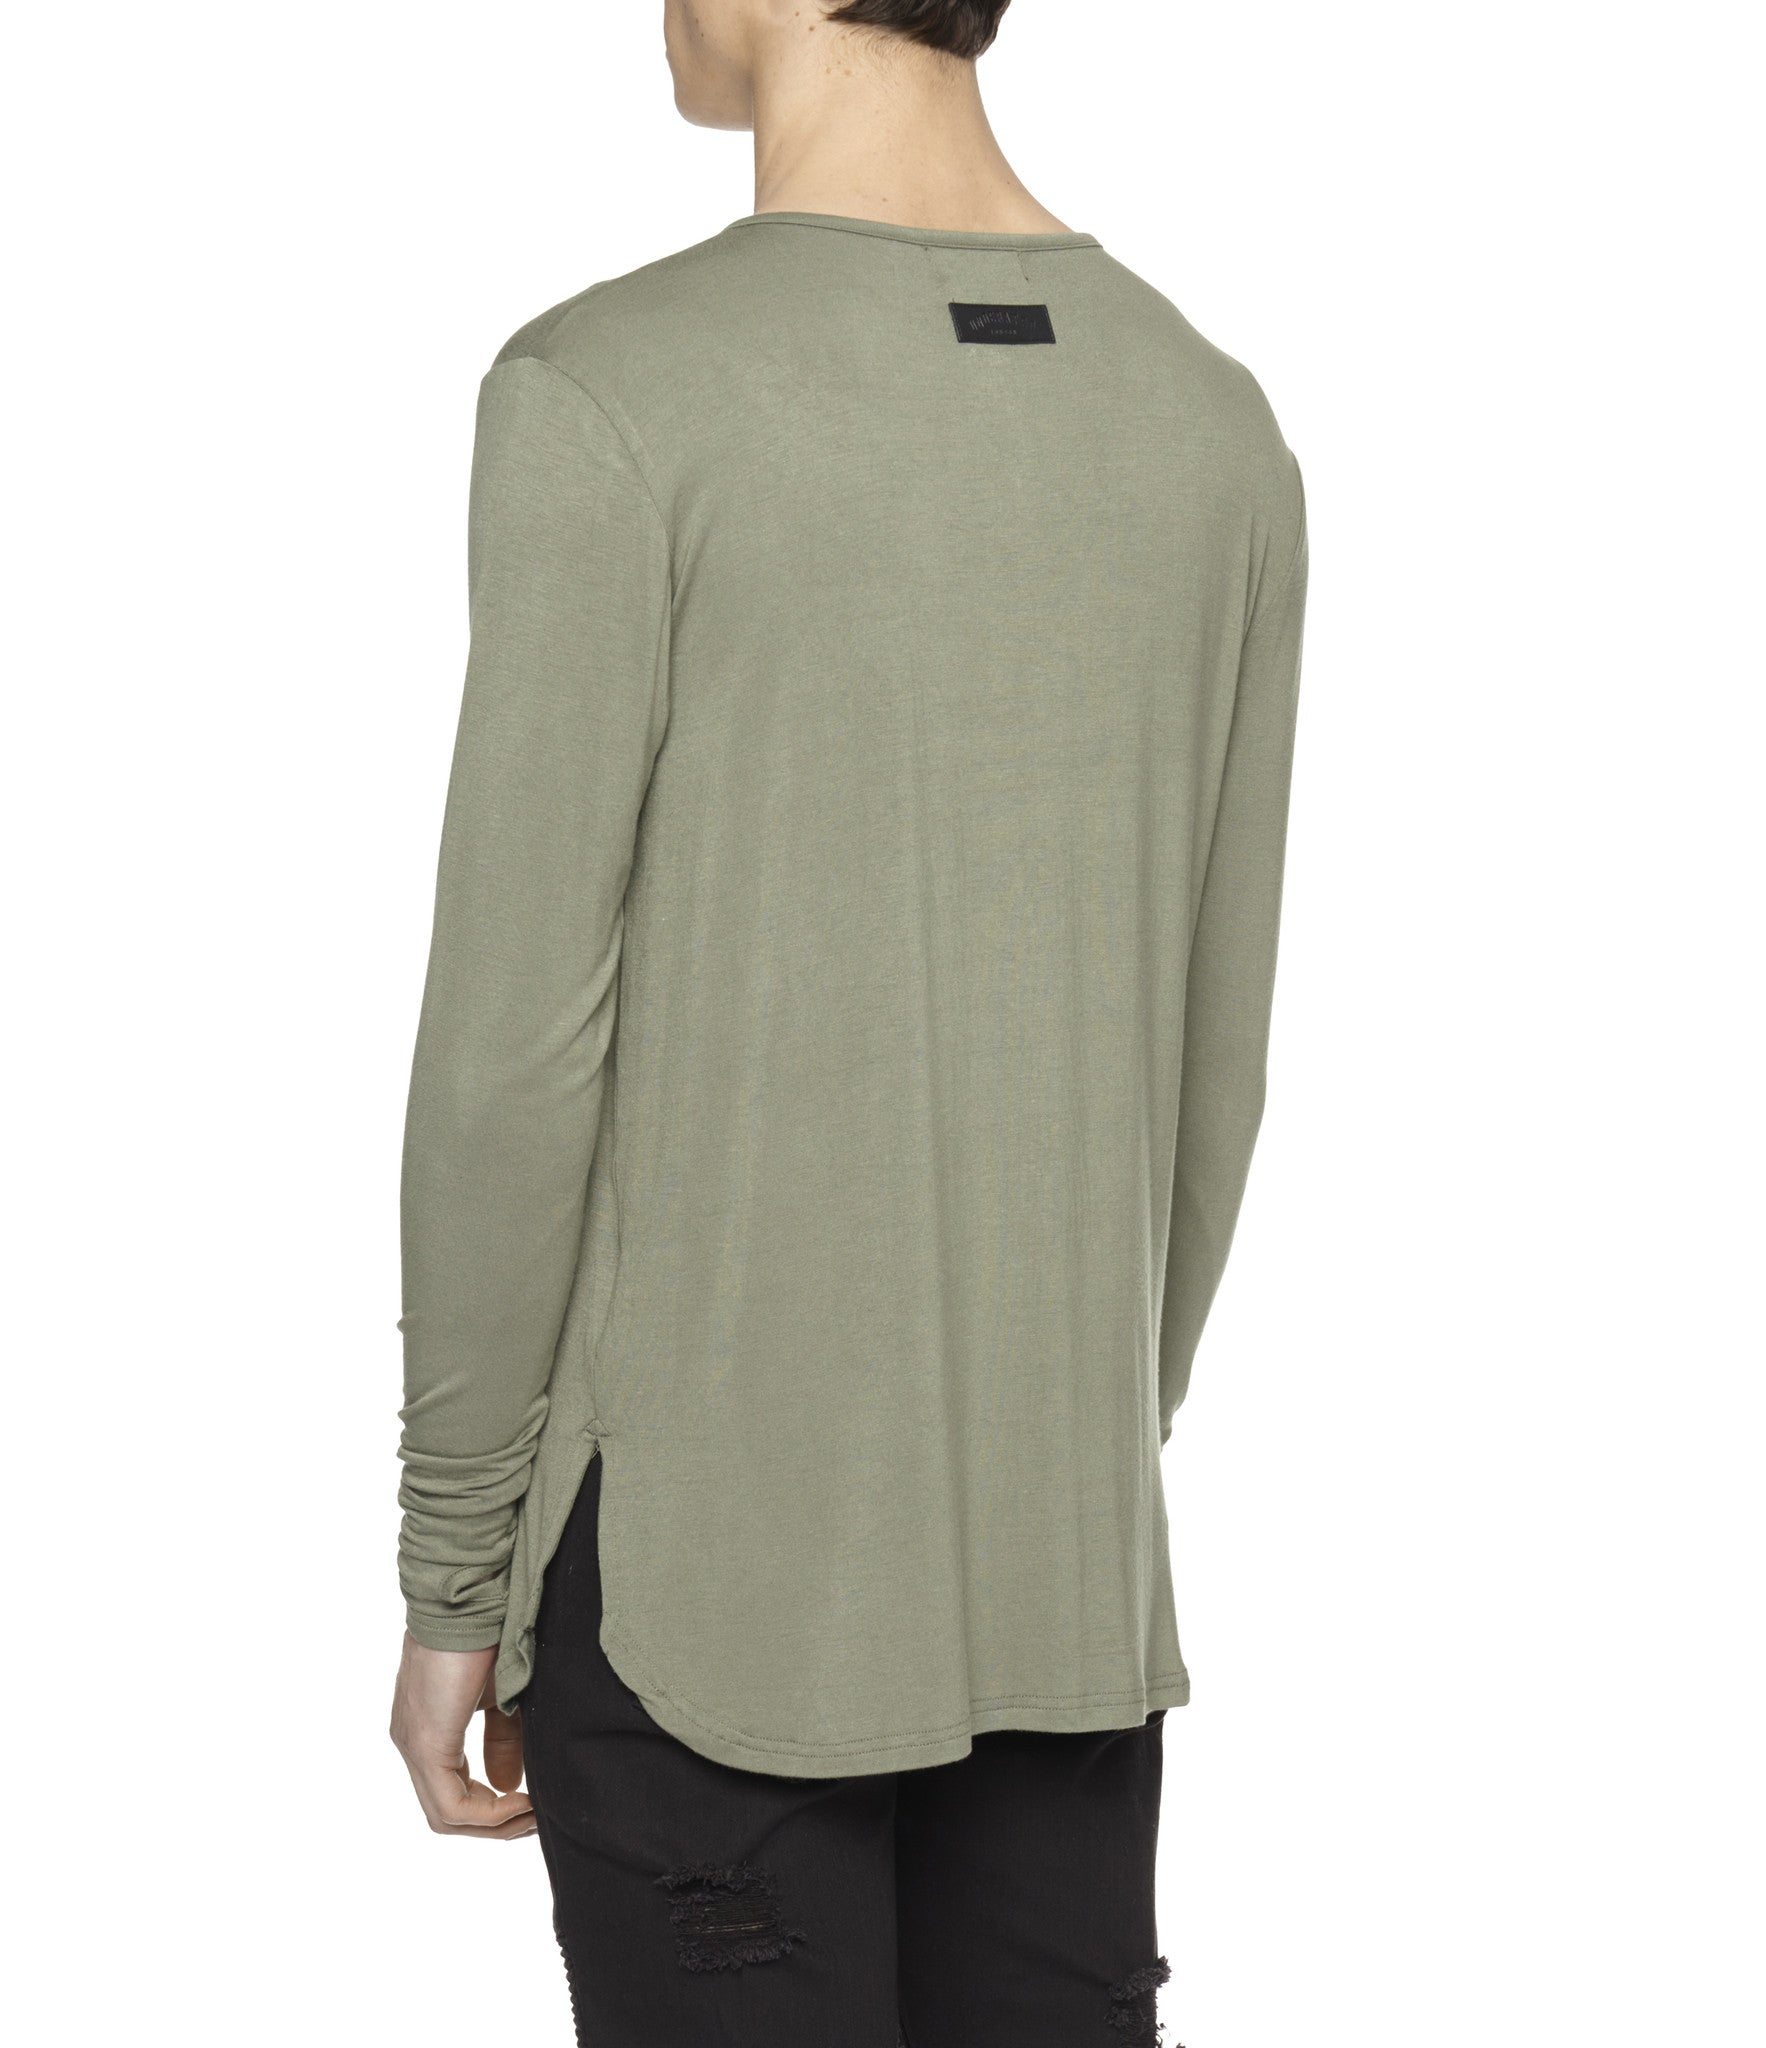 LS264 Under Layer Henley Tee - Khaki - underated london - underatedco - 5